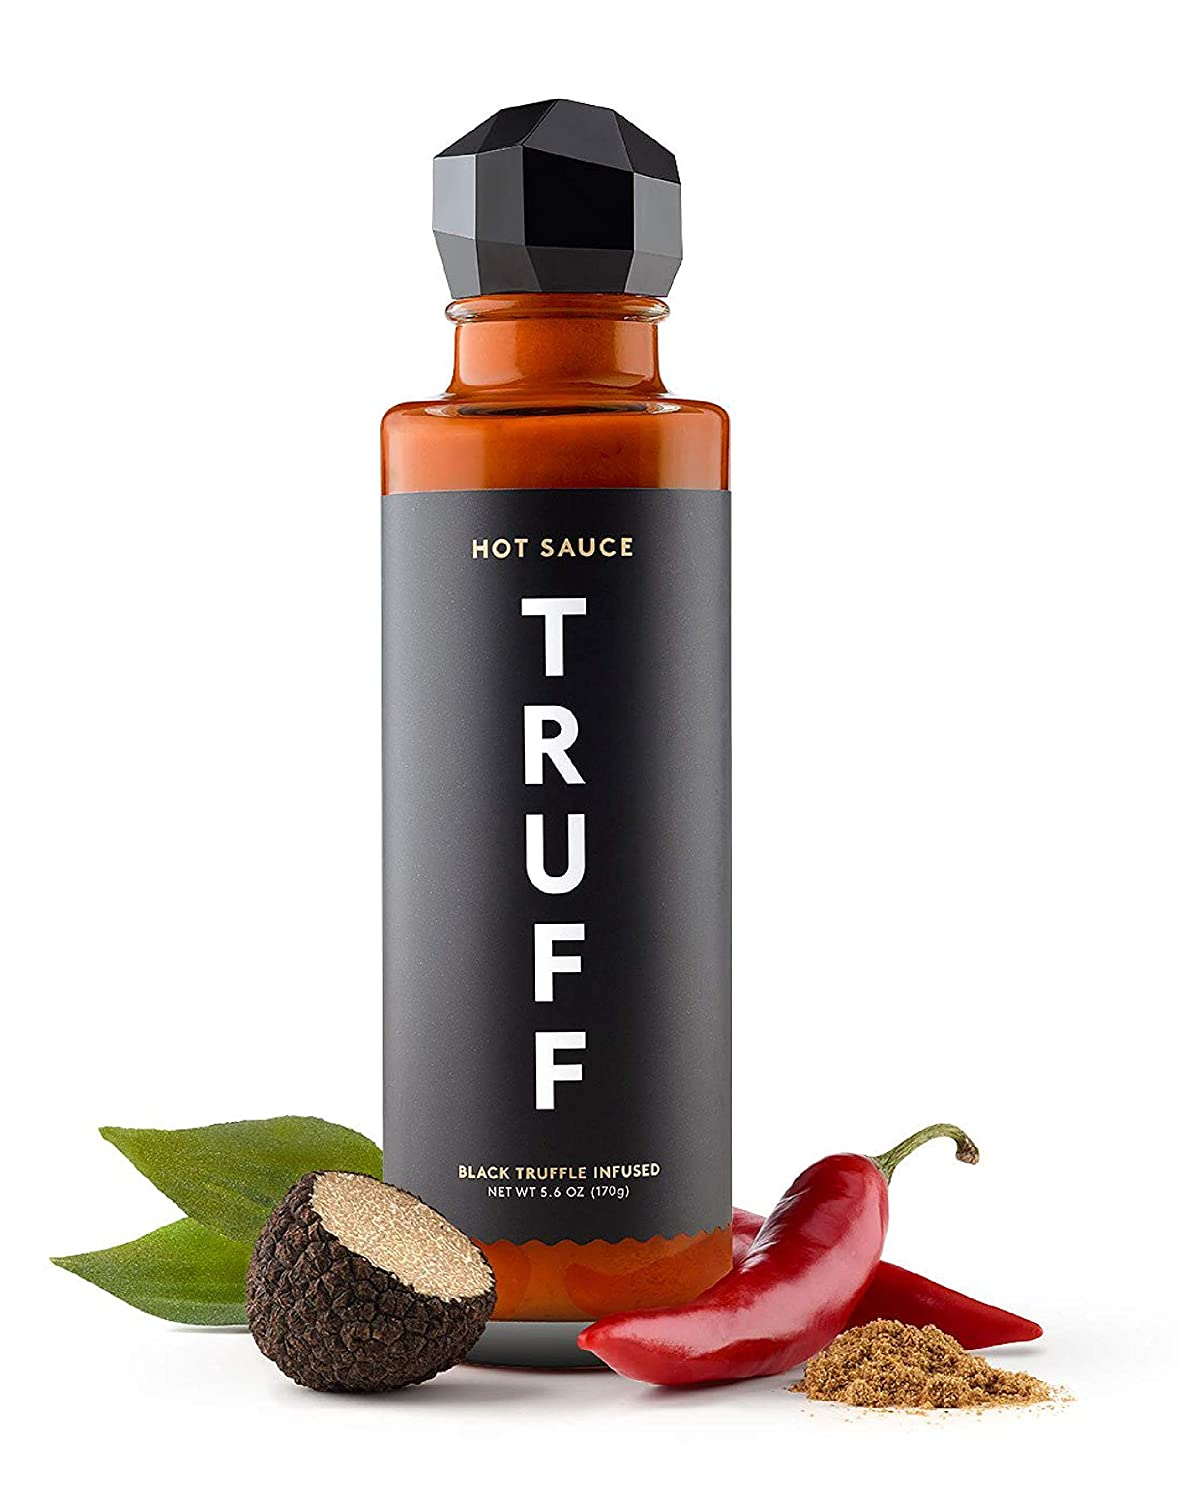 TRUFF Hot Sauce, Gourmet Hot Sauce with Ripe Chili Peppers, Black Truffle, Organic Agave Nectar, An ultra unique Flavor Experience in a 6 oz Bottle